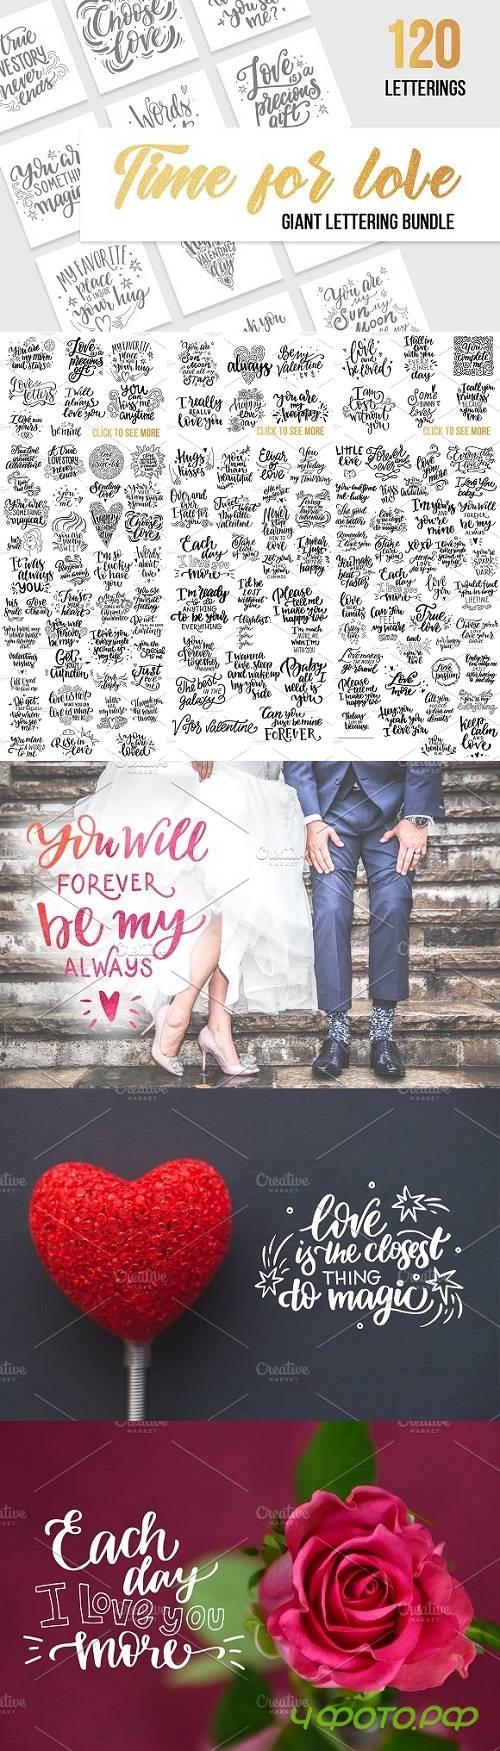 Giant lettering bundle about love - 1262391